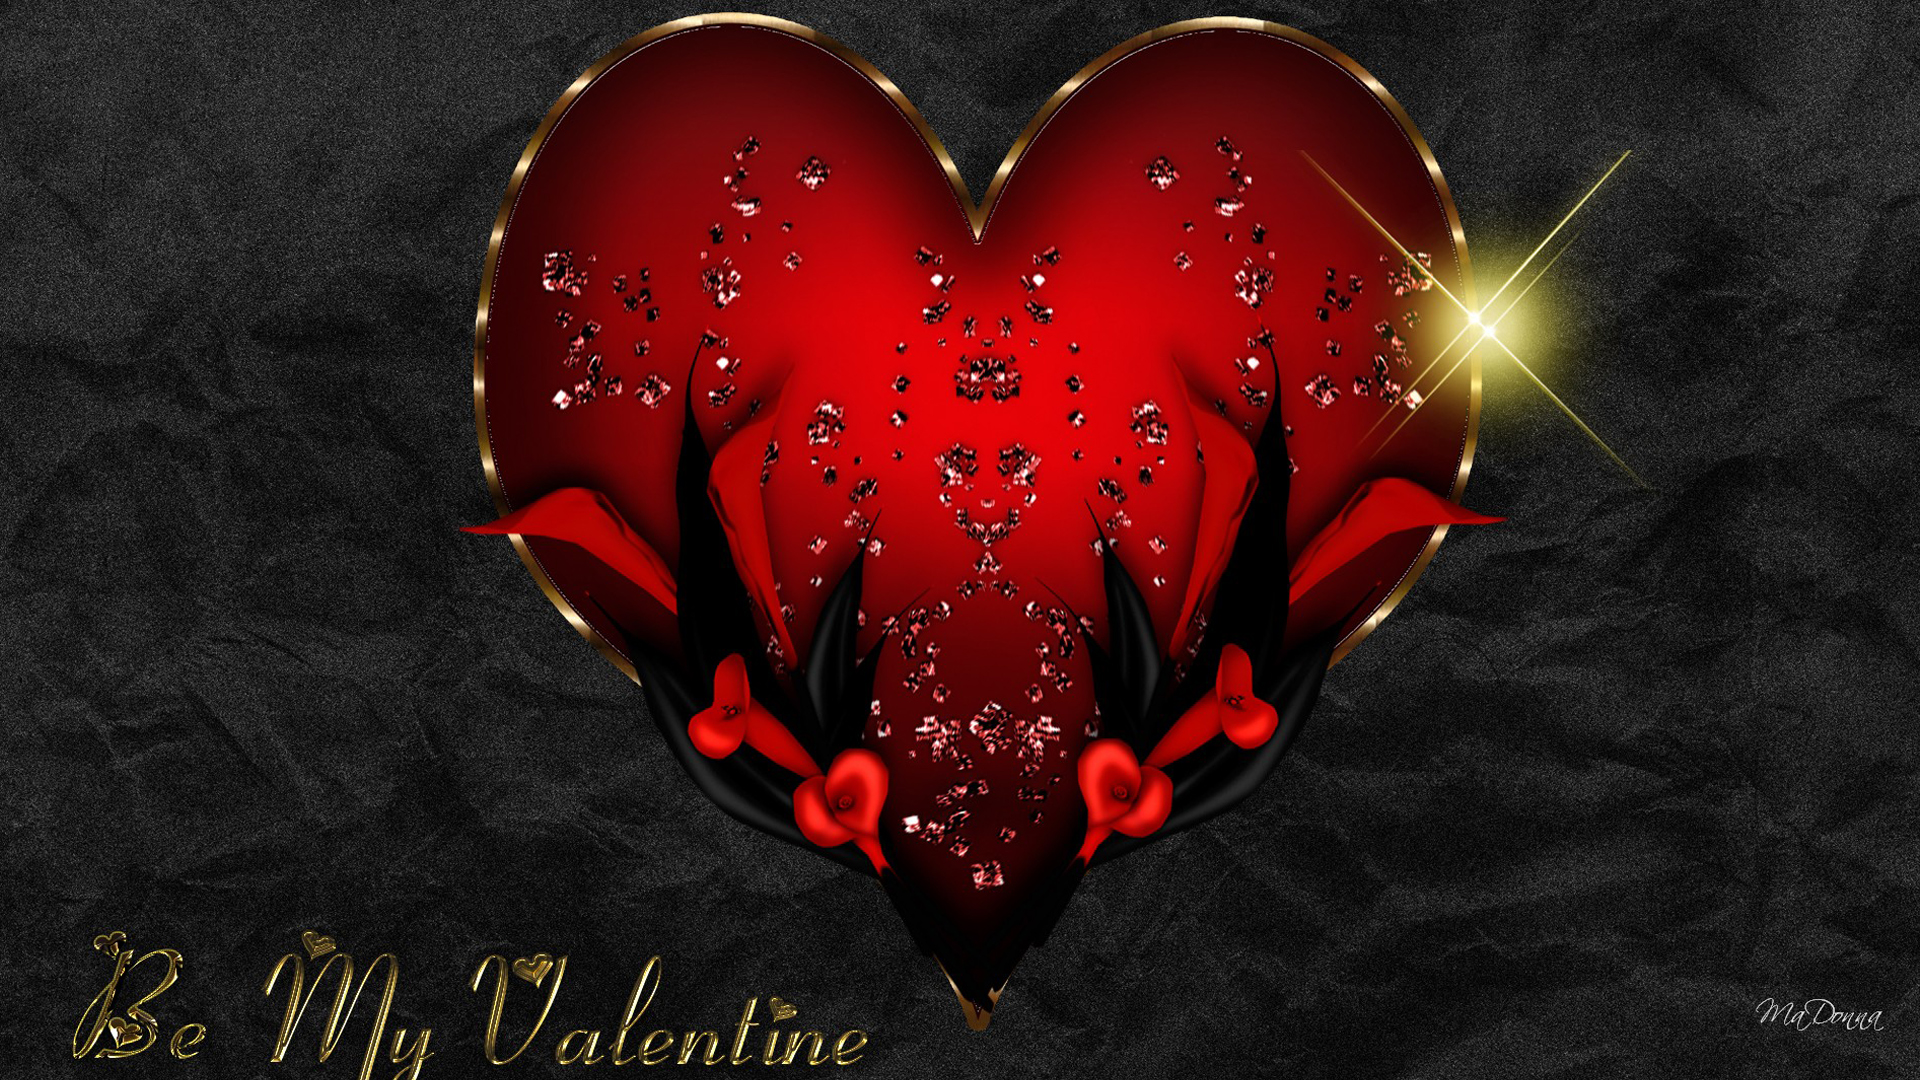 Red Heart On Black Silk Wallpaper ForWallpapercom 1920x1080